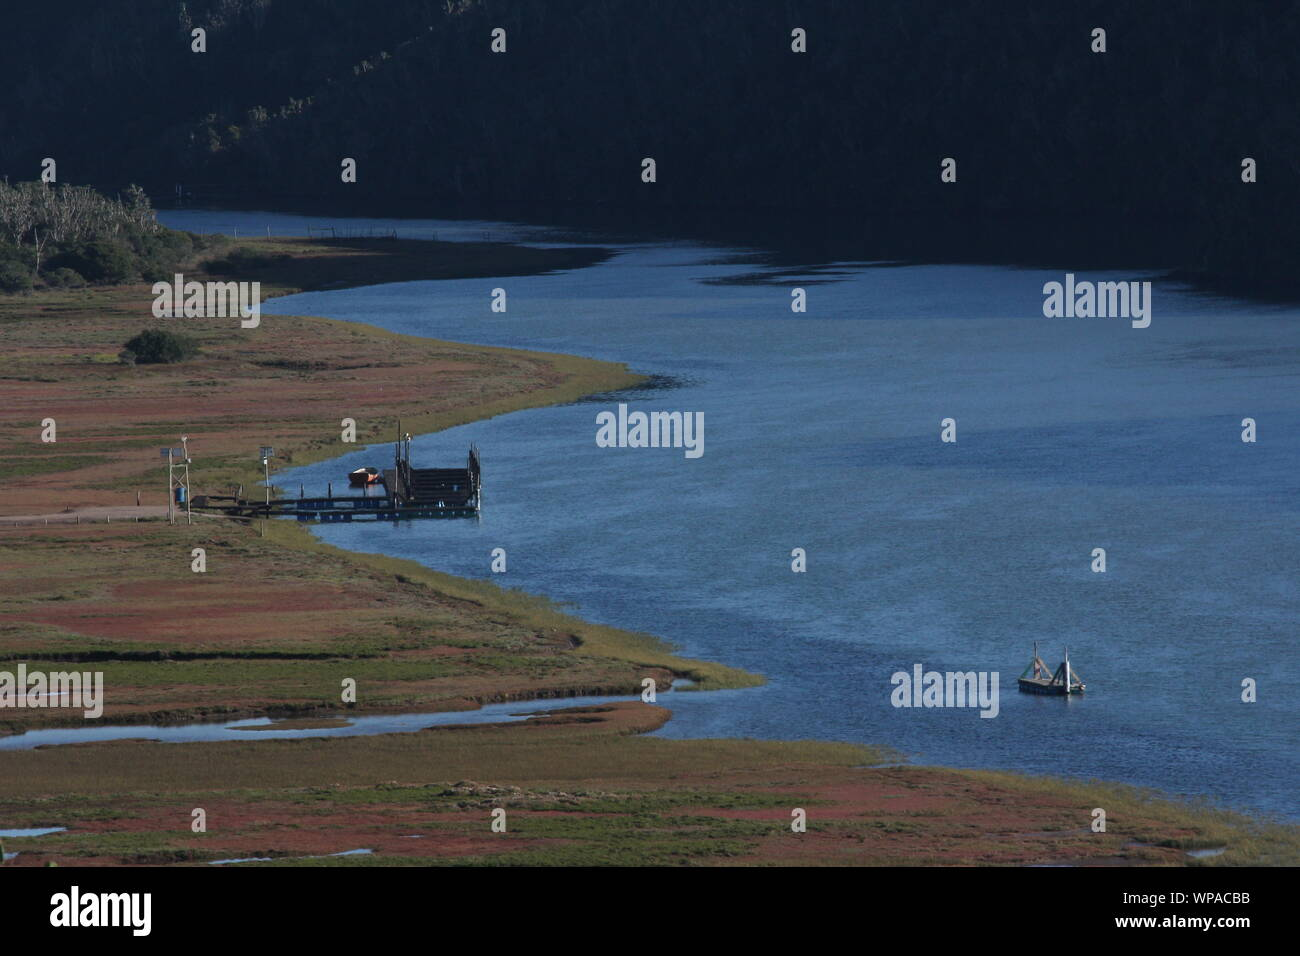 Tidal estuary of Boesmans Rivier west of Kenton-on-Sea, Eastern Cape, South Africa Stock Photo